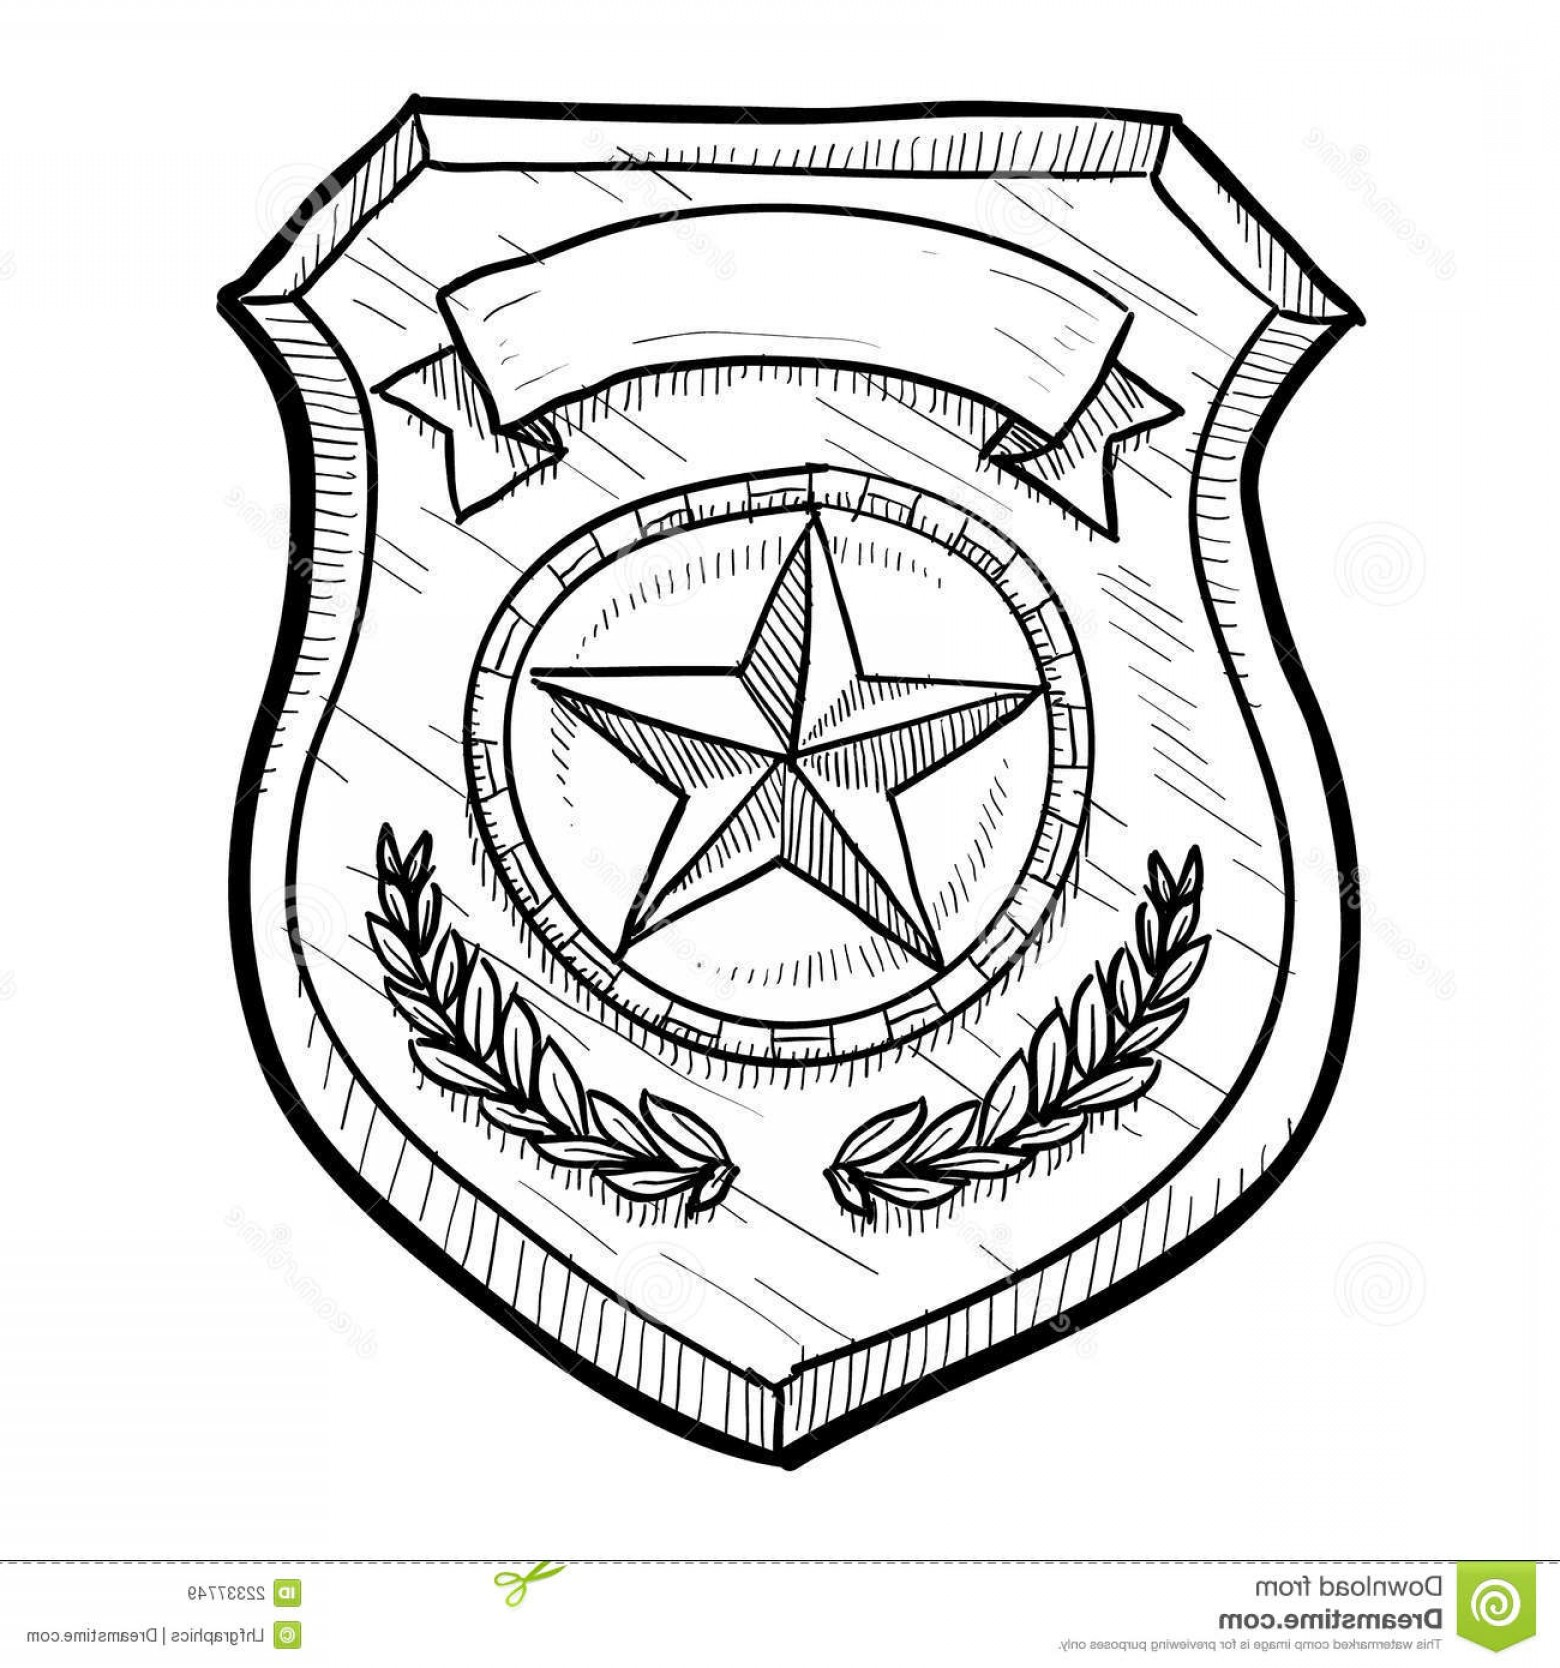 Law Enforcement Badges Vector: Royalty Free Stock Images Police Security Badge Sketch Image